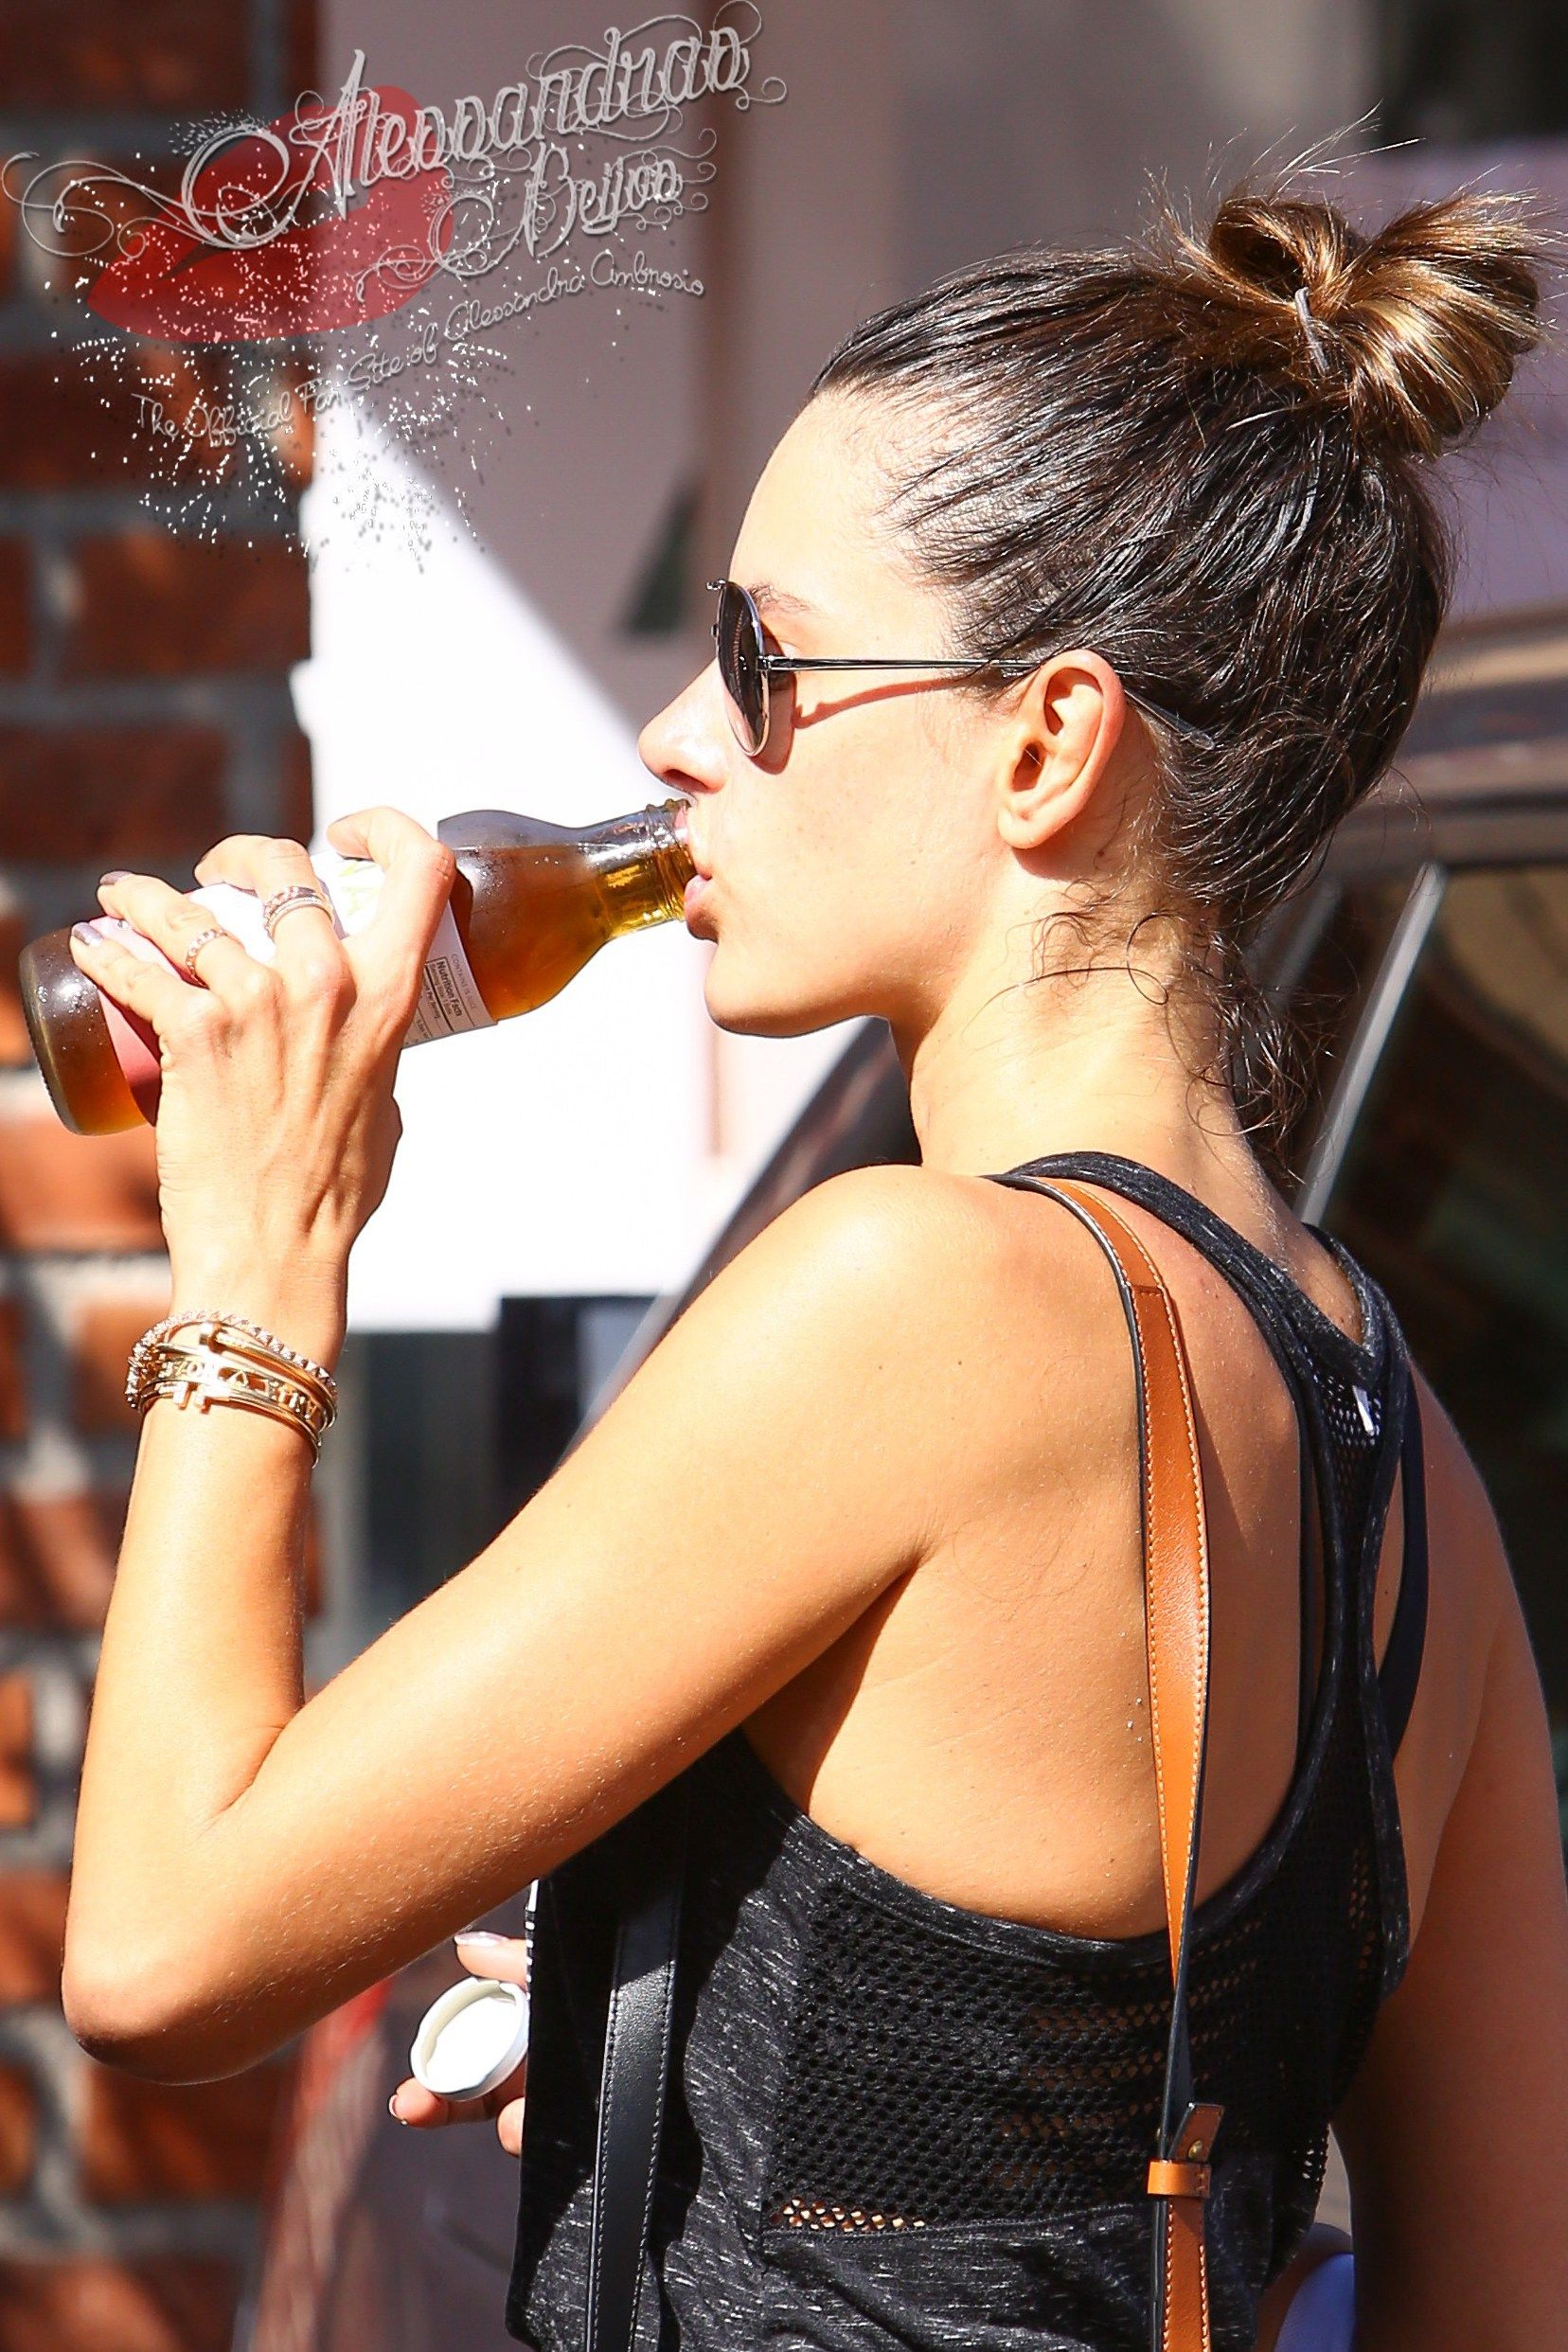 Alessandra Ambrosio keeps up with her weekly routine and hits the gym-Brentwood, CA – September 1, 2016